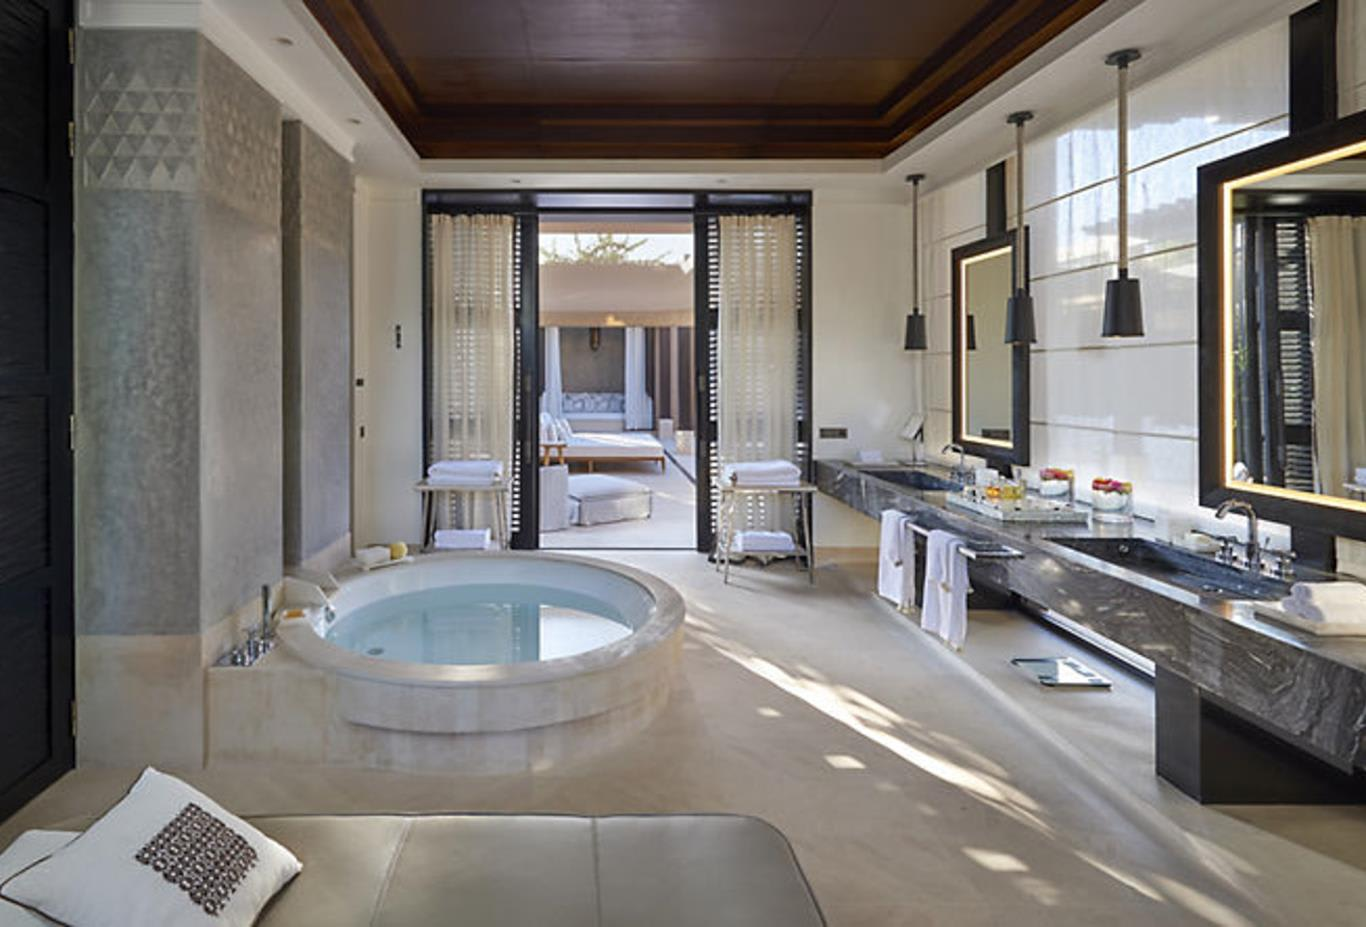 Villa-mandarin-pool-bathroom